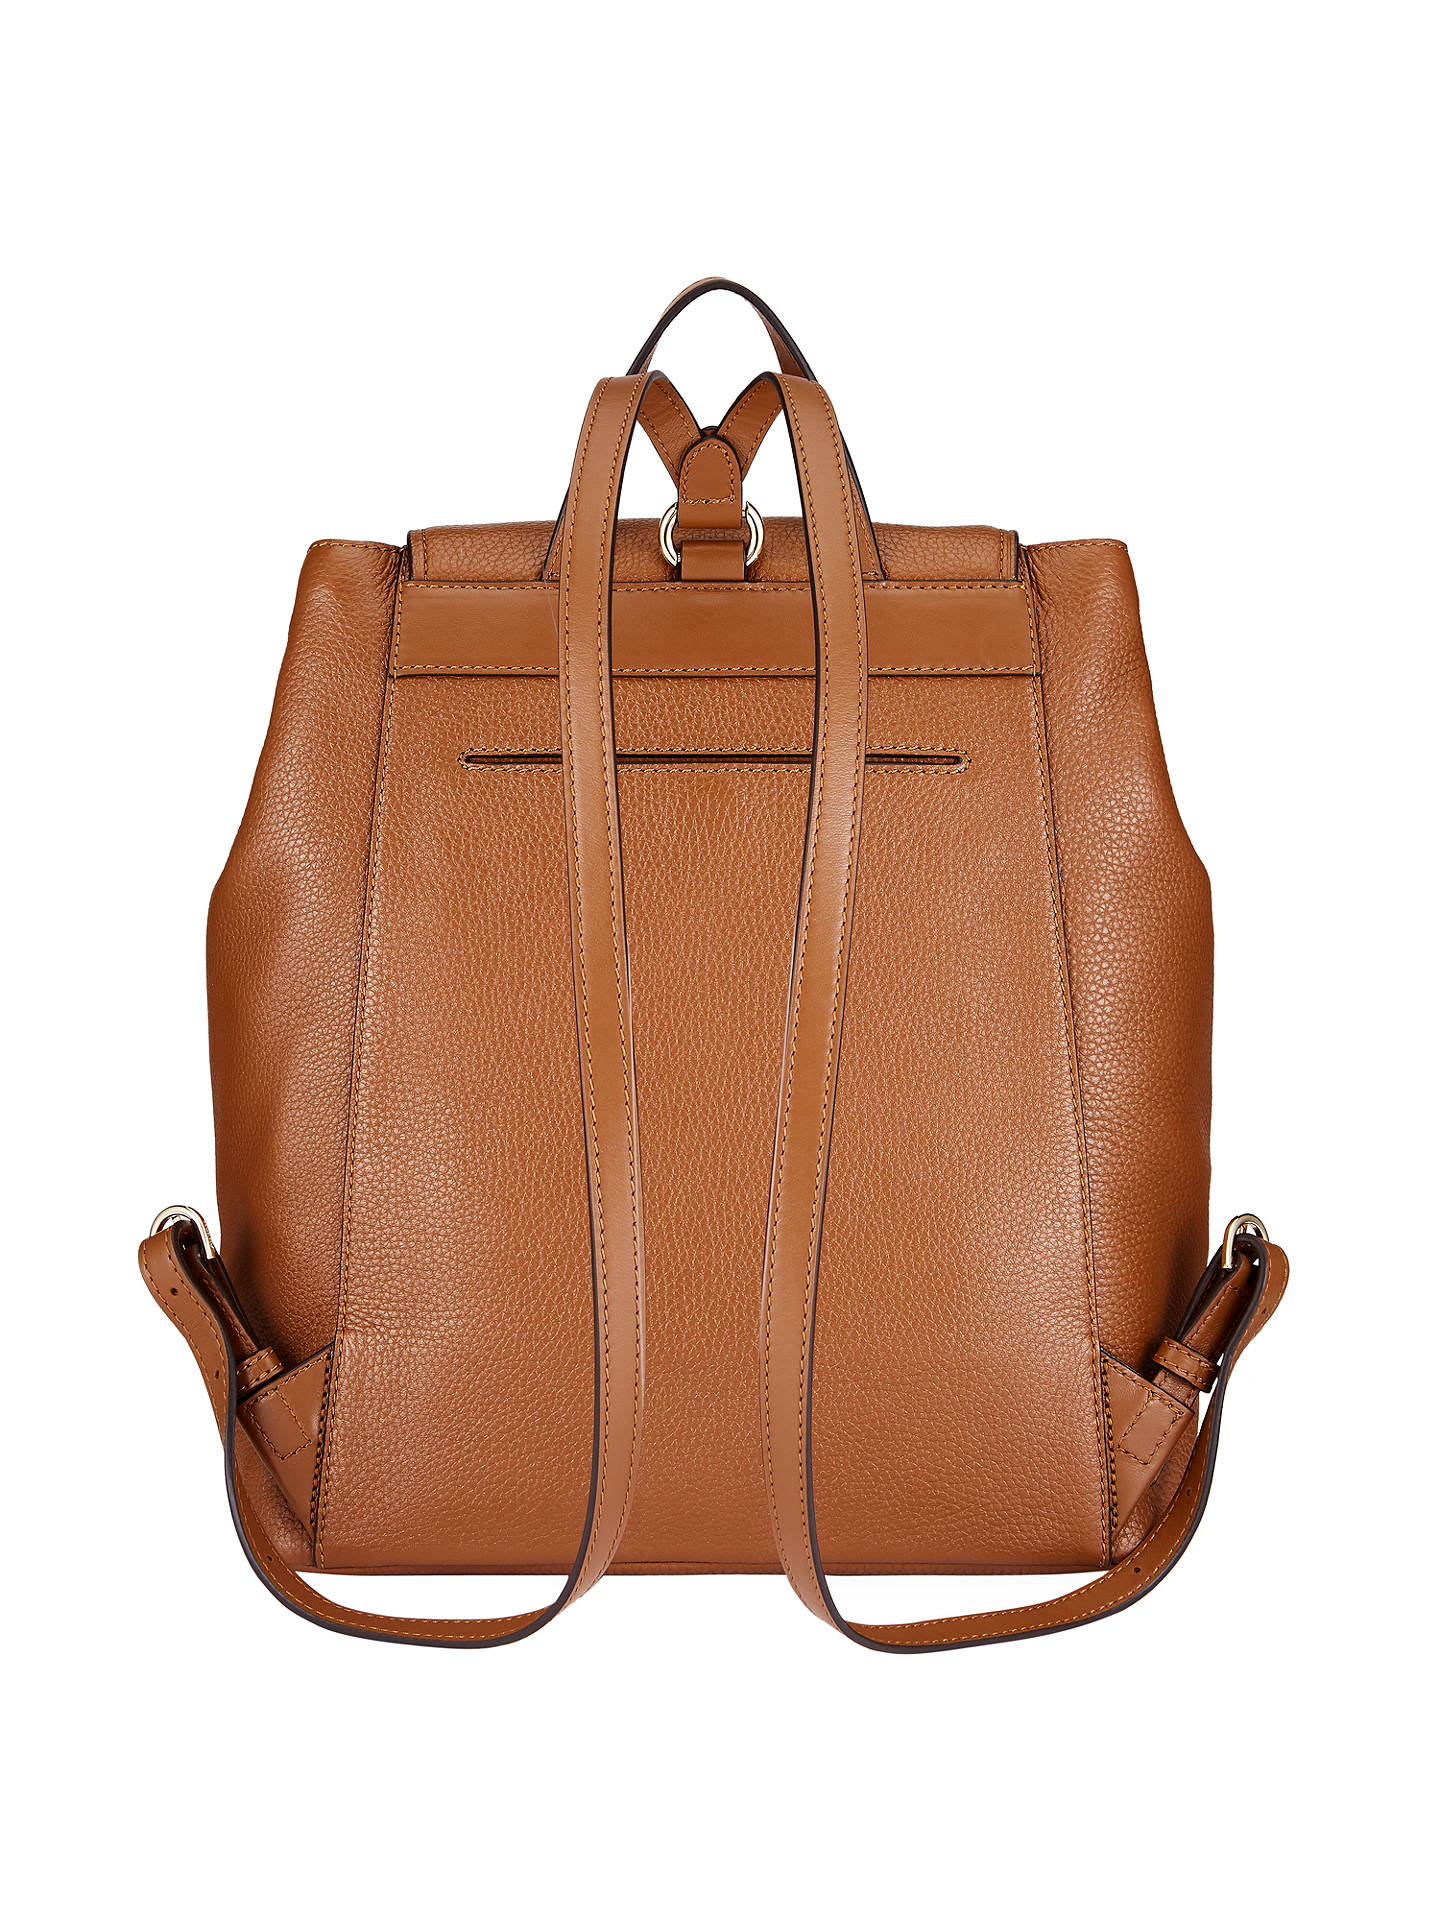 dfaa7059d41198 ... Buy MICHAEL Michael Kors Cooper Leather Large Backpack, Luggage Online  at johnlewis.com ...